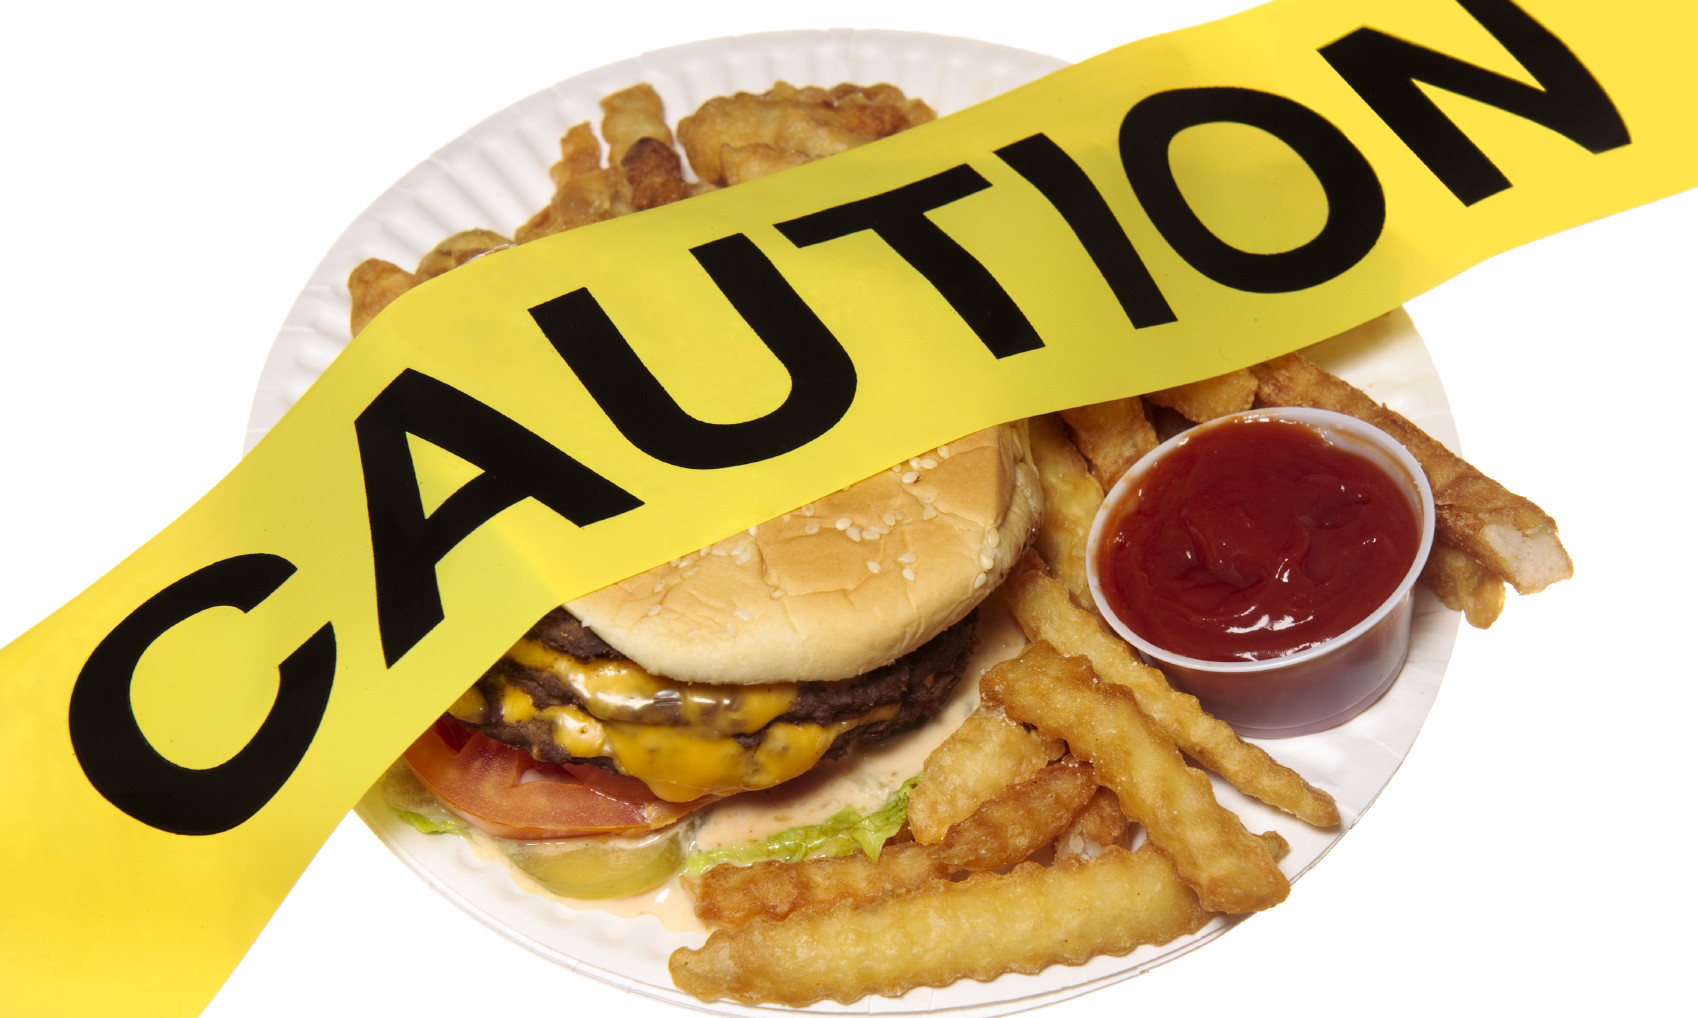 Should junk food adverts be banned